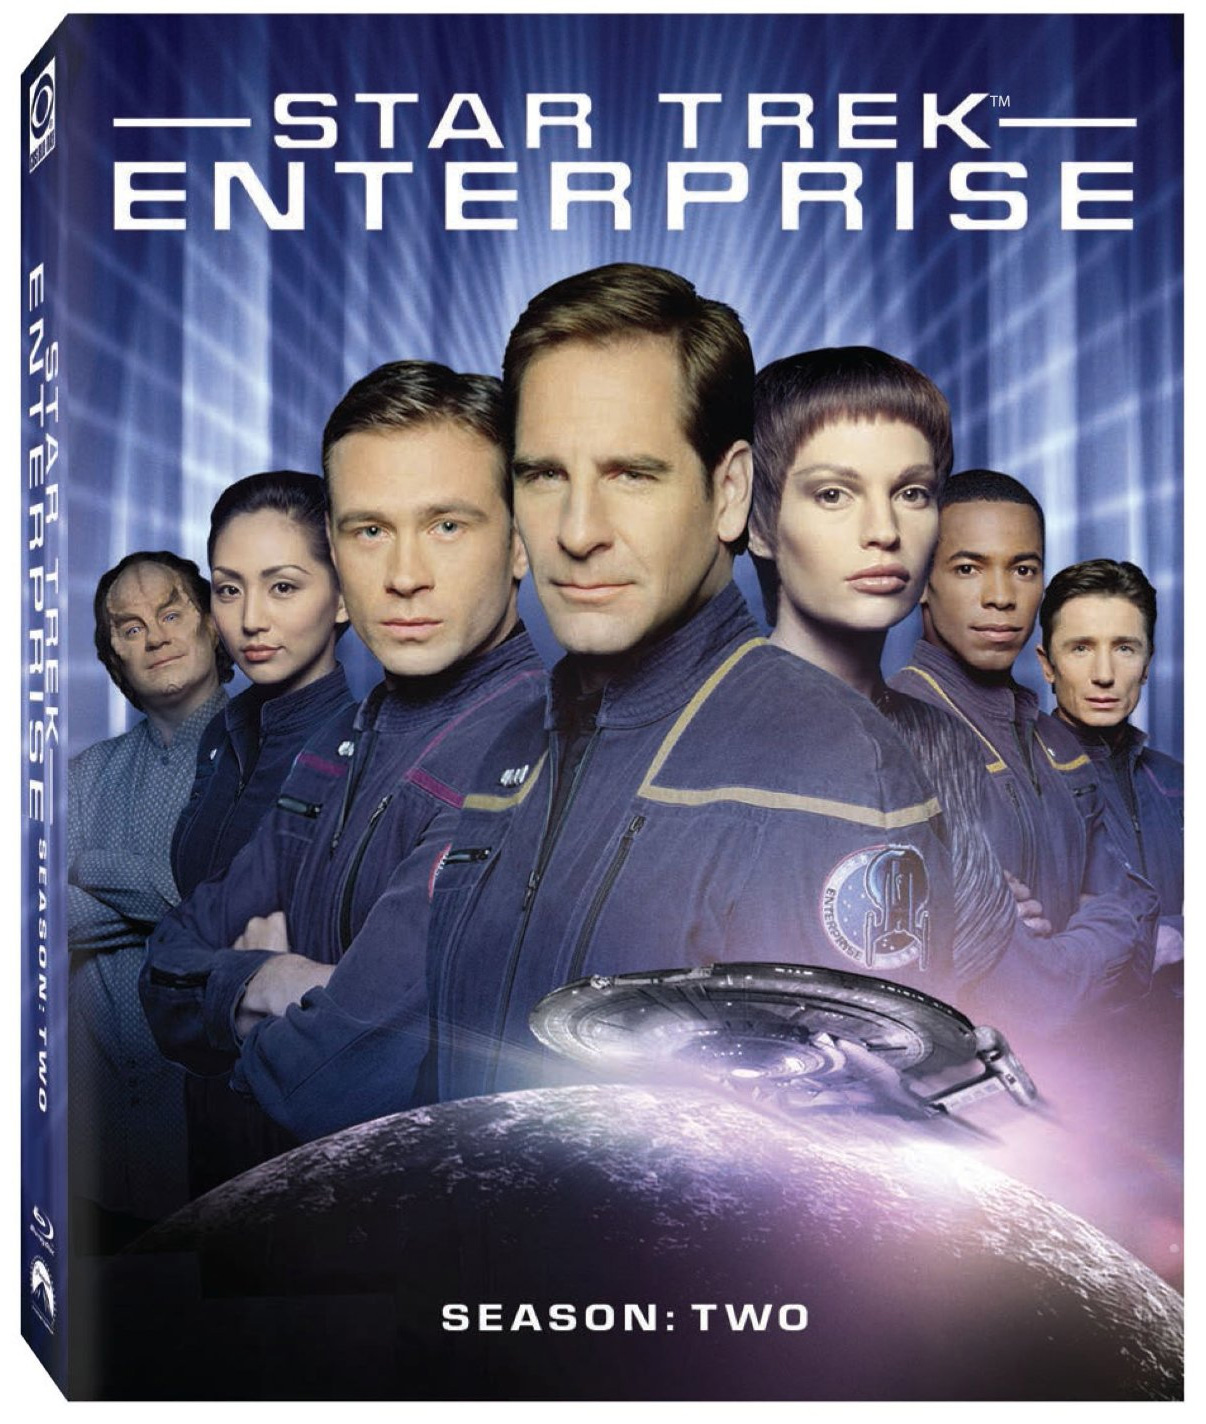 Enterprise season 2 Blu-ray cover - Jolene Blalock as t'pol and Scott Bakula as Jonathan Archer